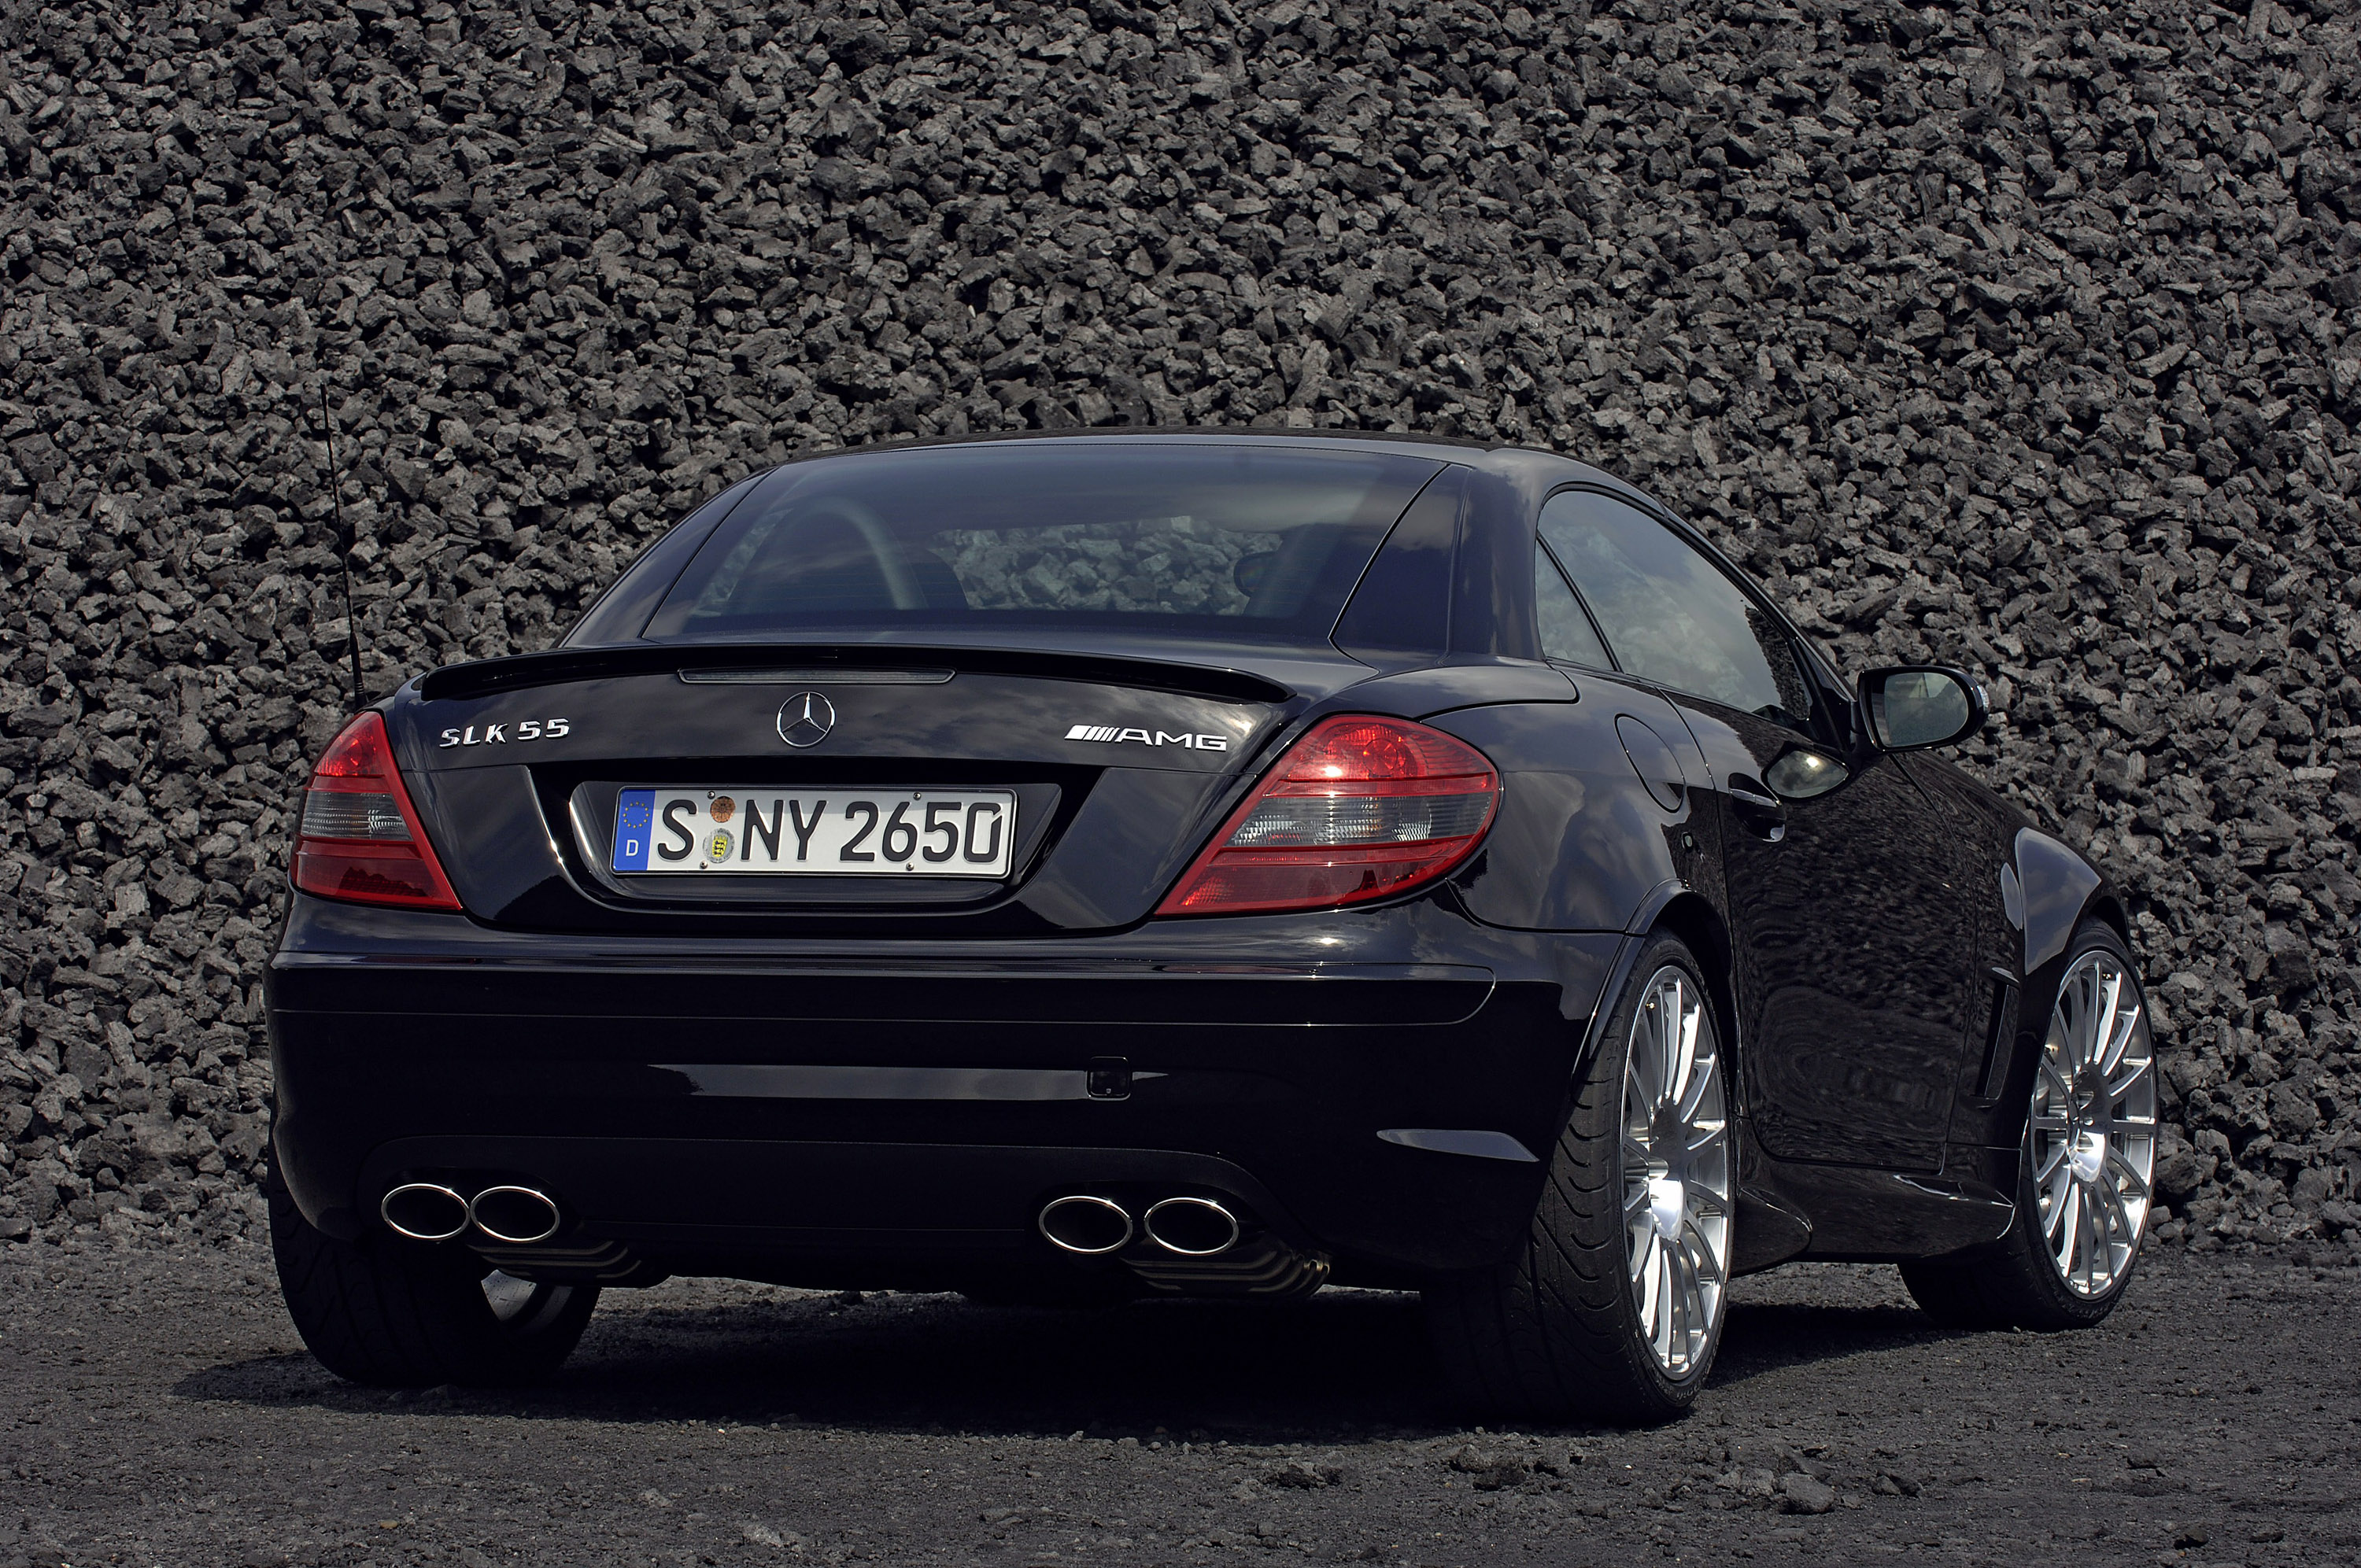 Gwa panamericana styling kit for the 2010 mercedes benz sls for Mercedes benz slk 55 amg special edition